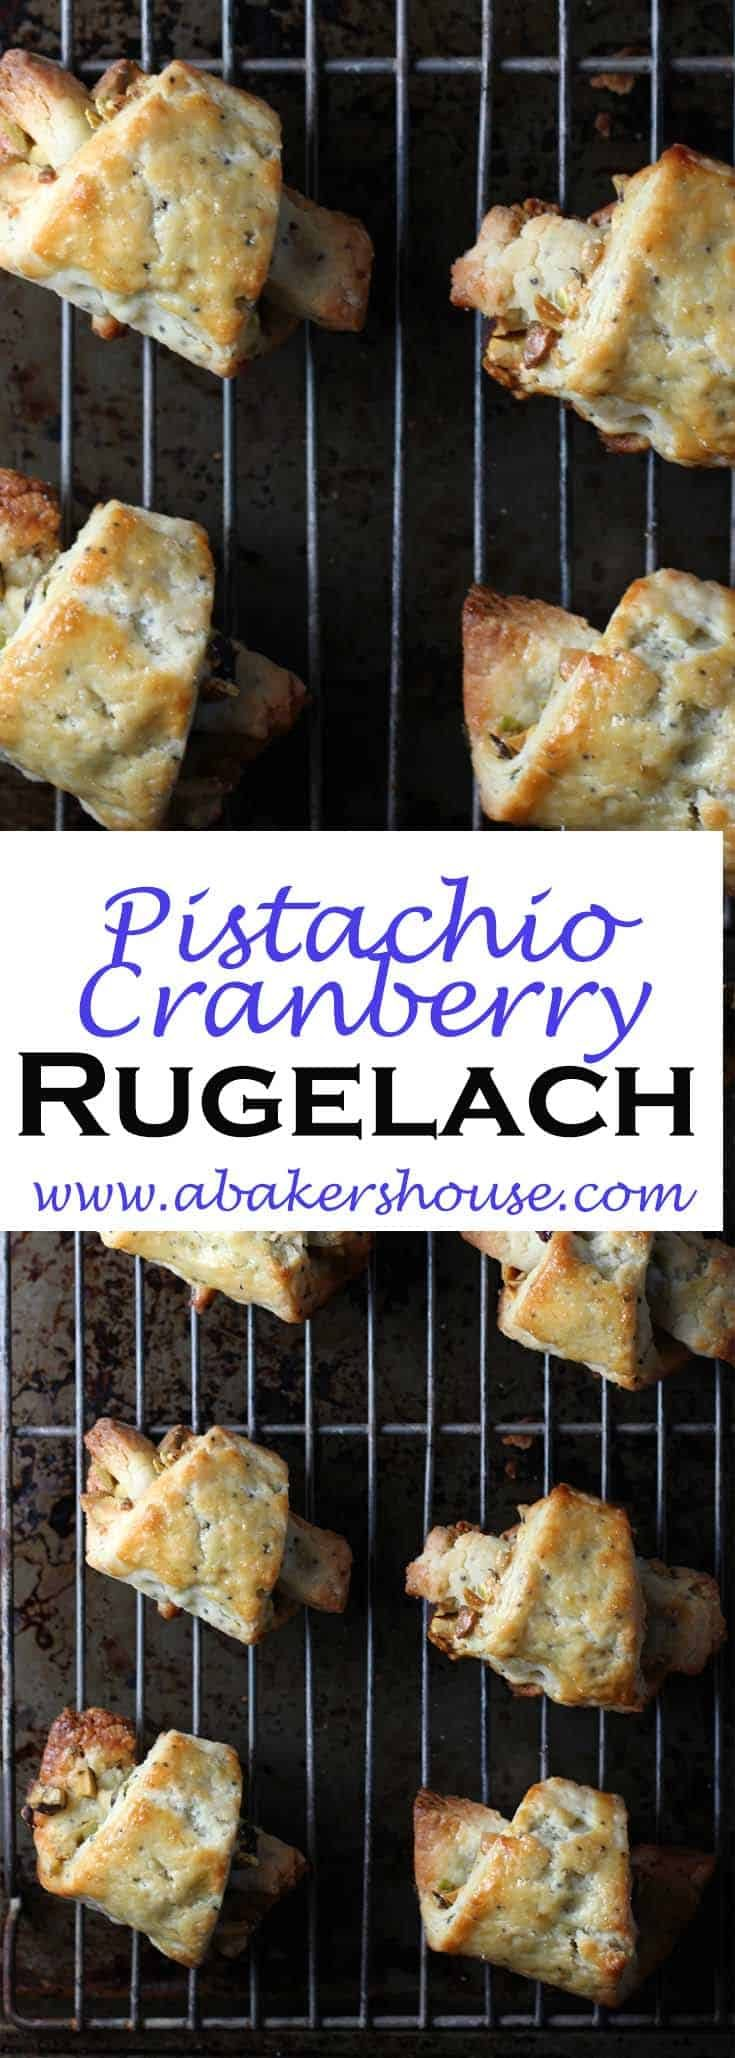 This pistachio-citrus rugelach recipe is from Whole Foods. I added dried cranberries toget into the Christmas spirit with a red and green filling. In fact my only addition was the one half cup of dried cranberries and the zest of an orange which you can add to the filling. #abakershouse #rugelach #holidaybaking #pistachio #cranberry #driedfruits